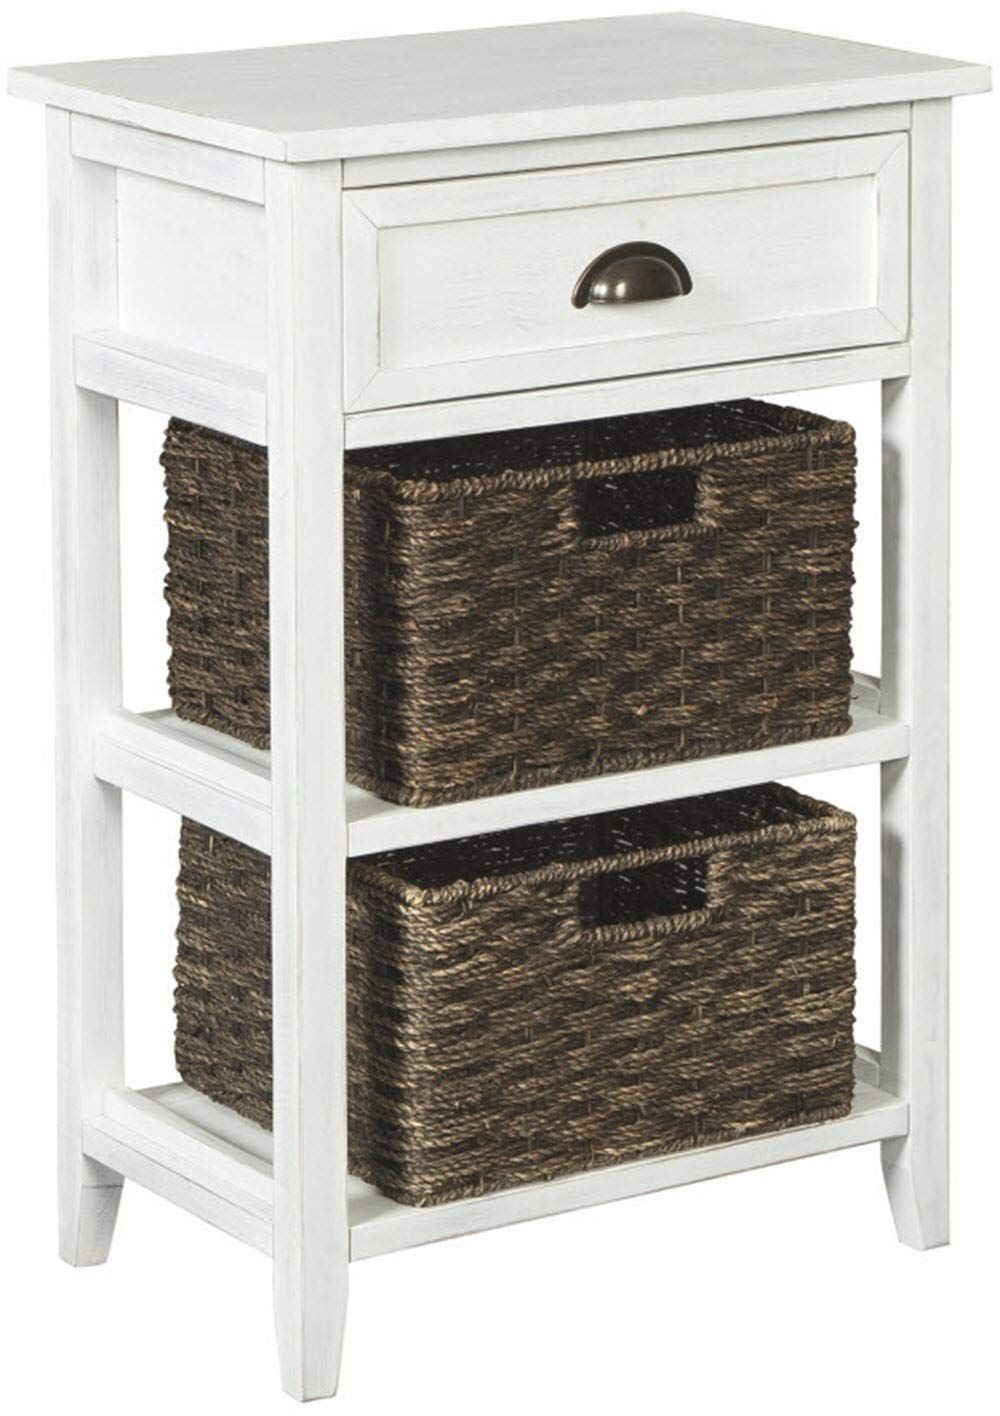 ashley furniture signature design oslember storage accent table wicker includes brown removable baskets antique white finish hope you actually like our mirrored cube side black